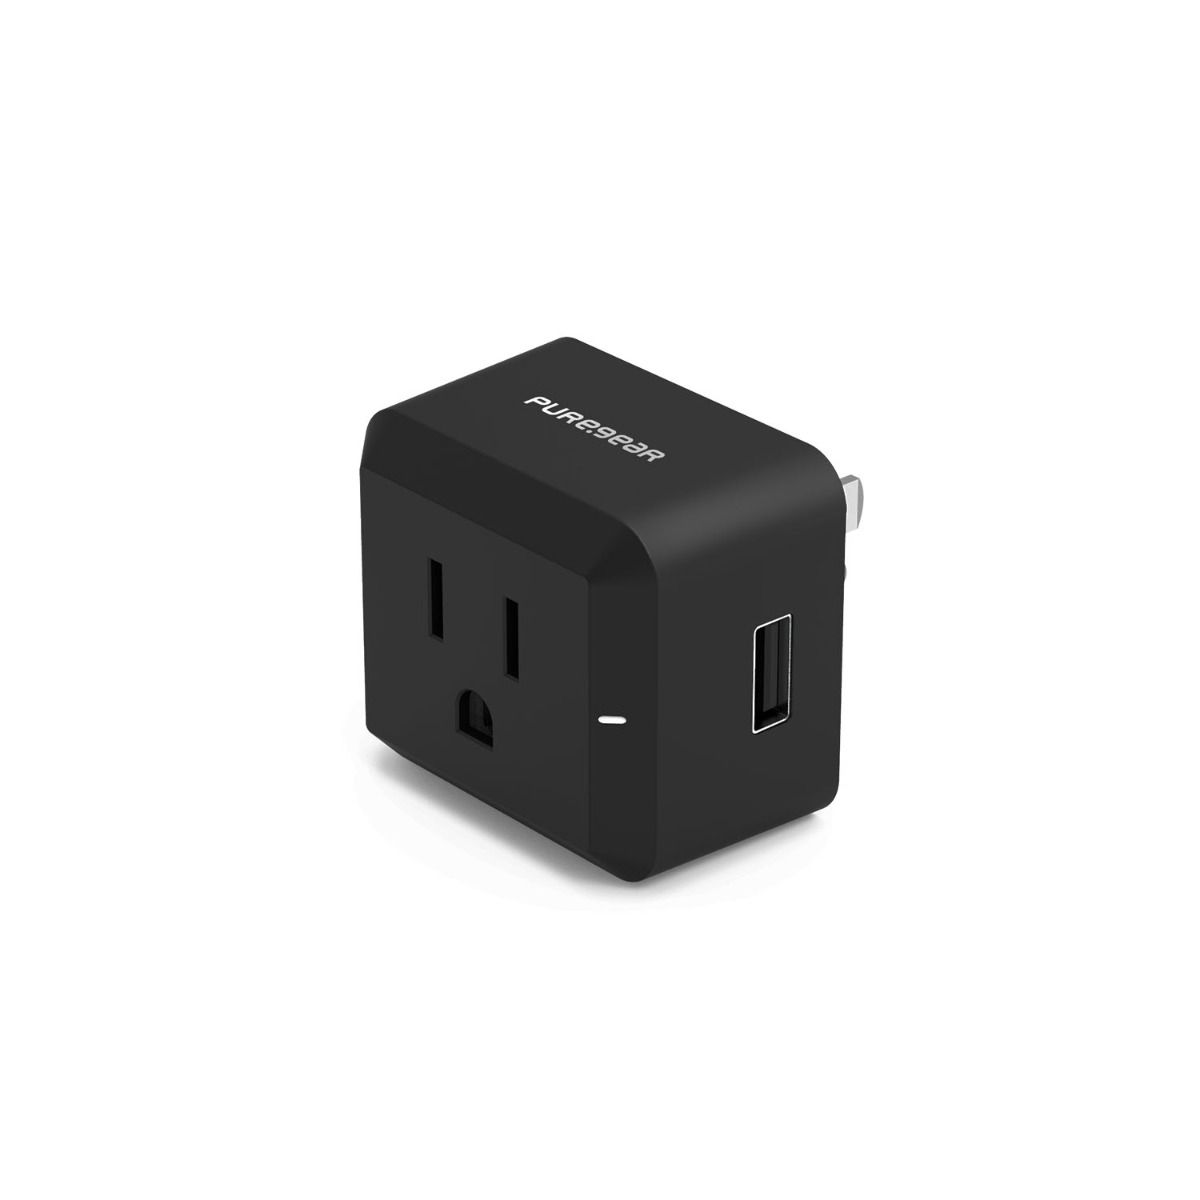 12W USB-A + AC Port Wall Charger